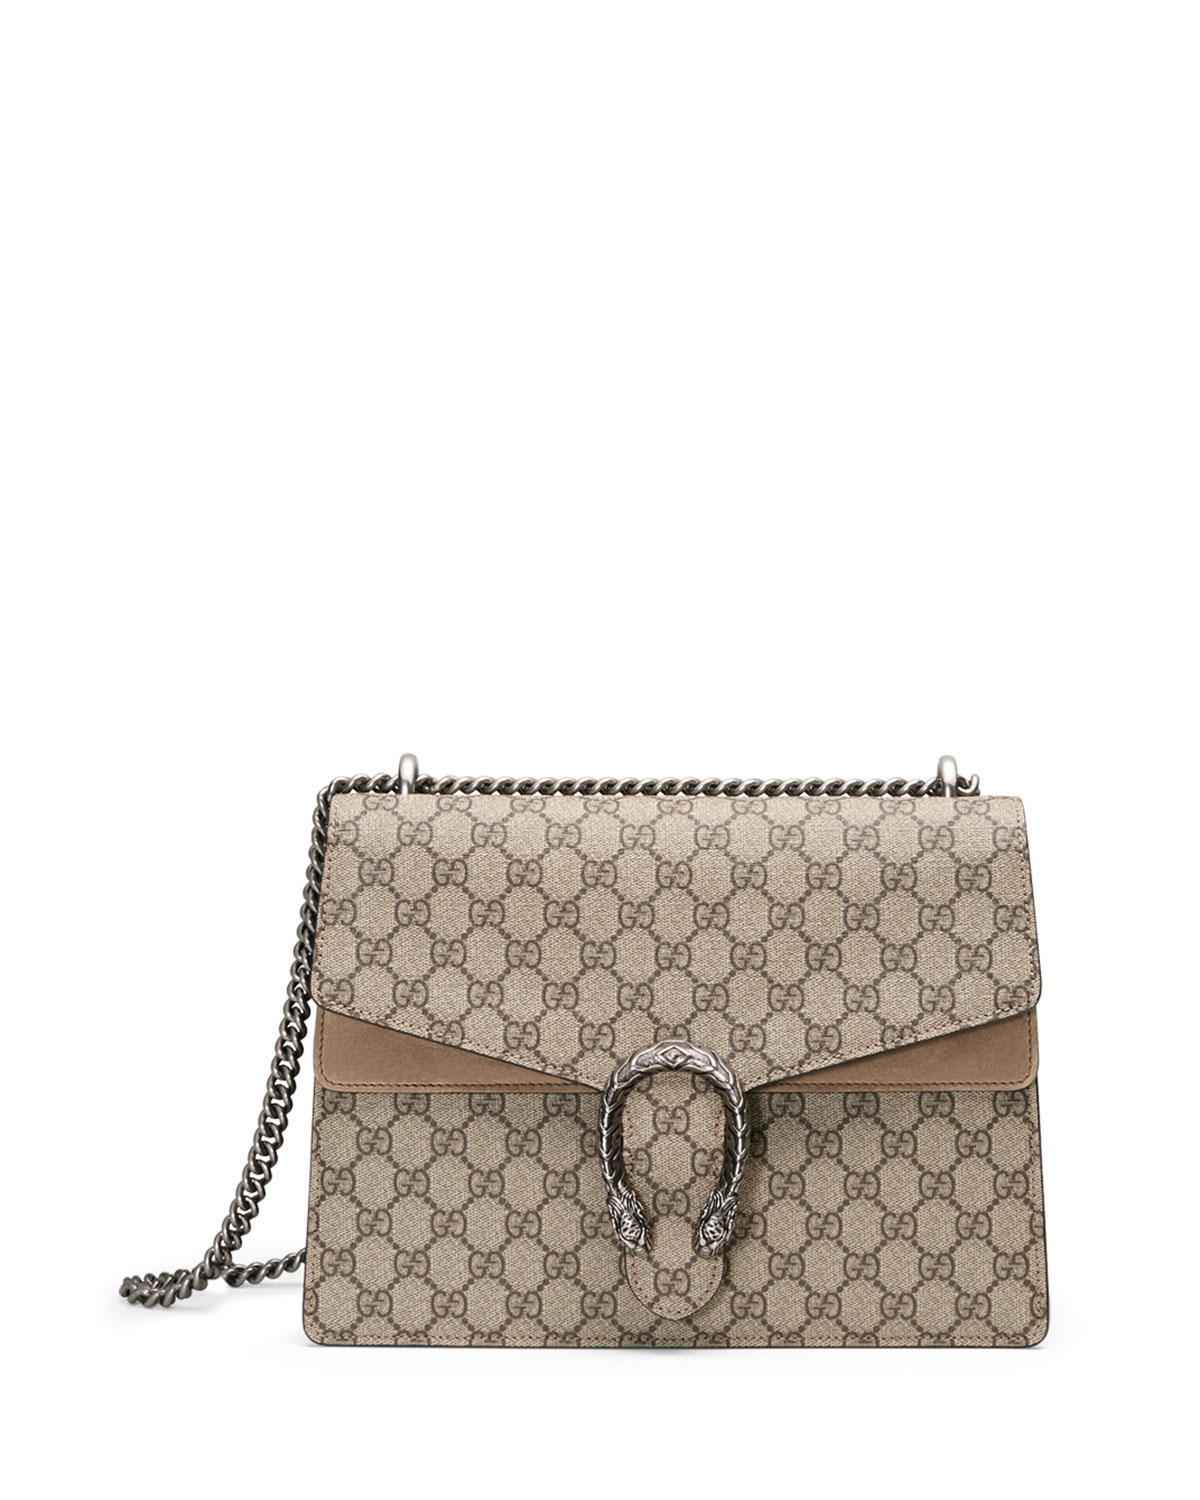 76745e226c1 Gucci Dionysus GG Supreme Shoulder Bag